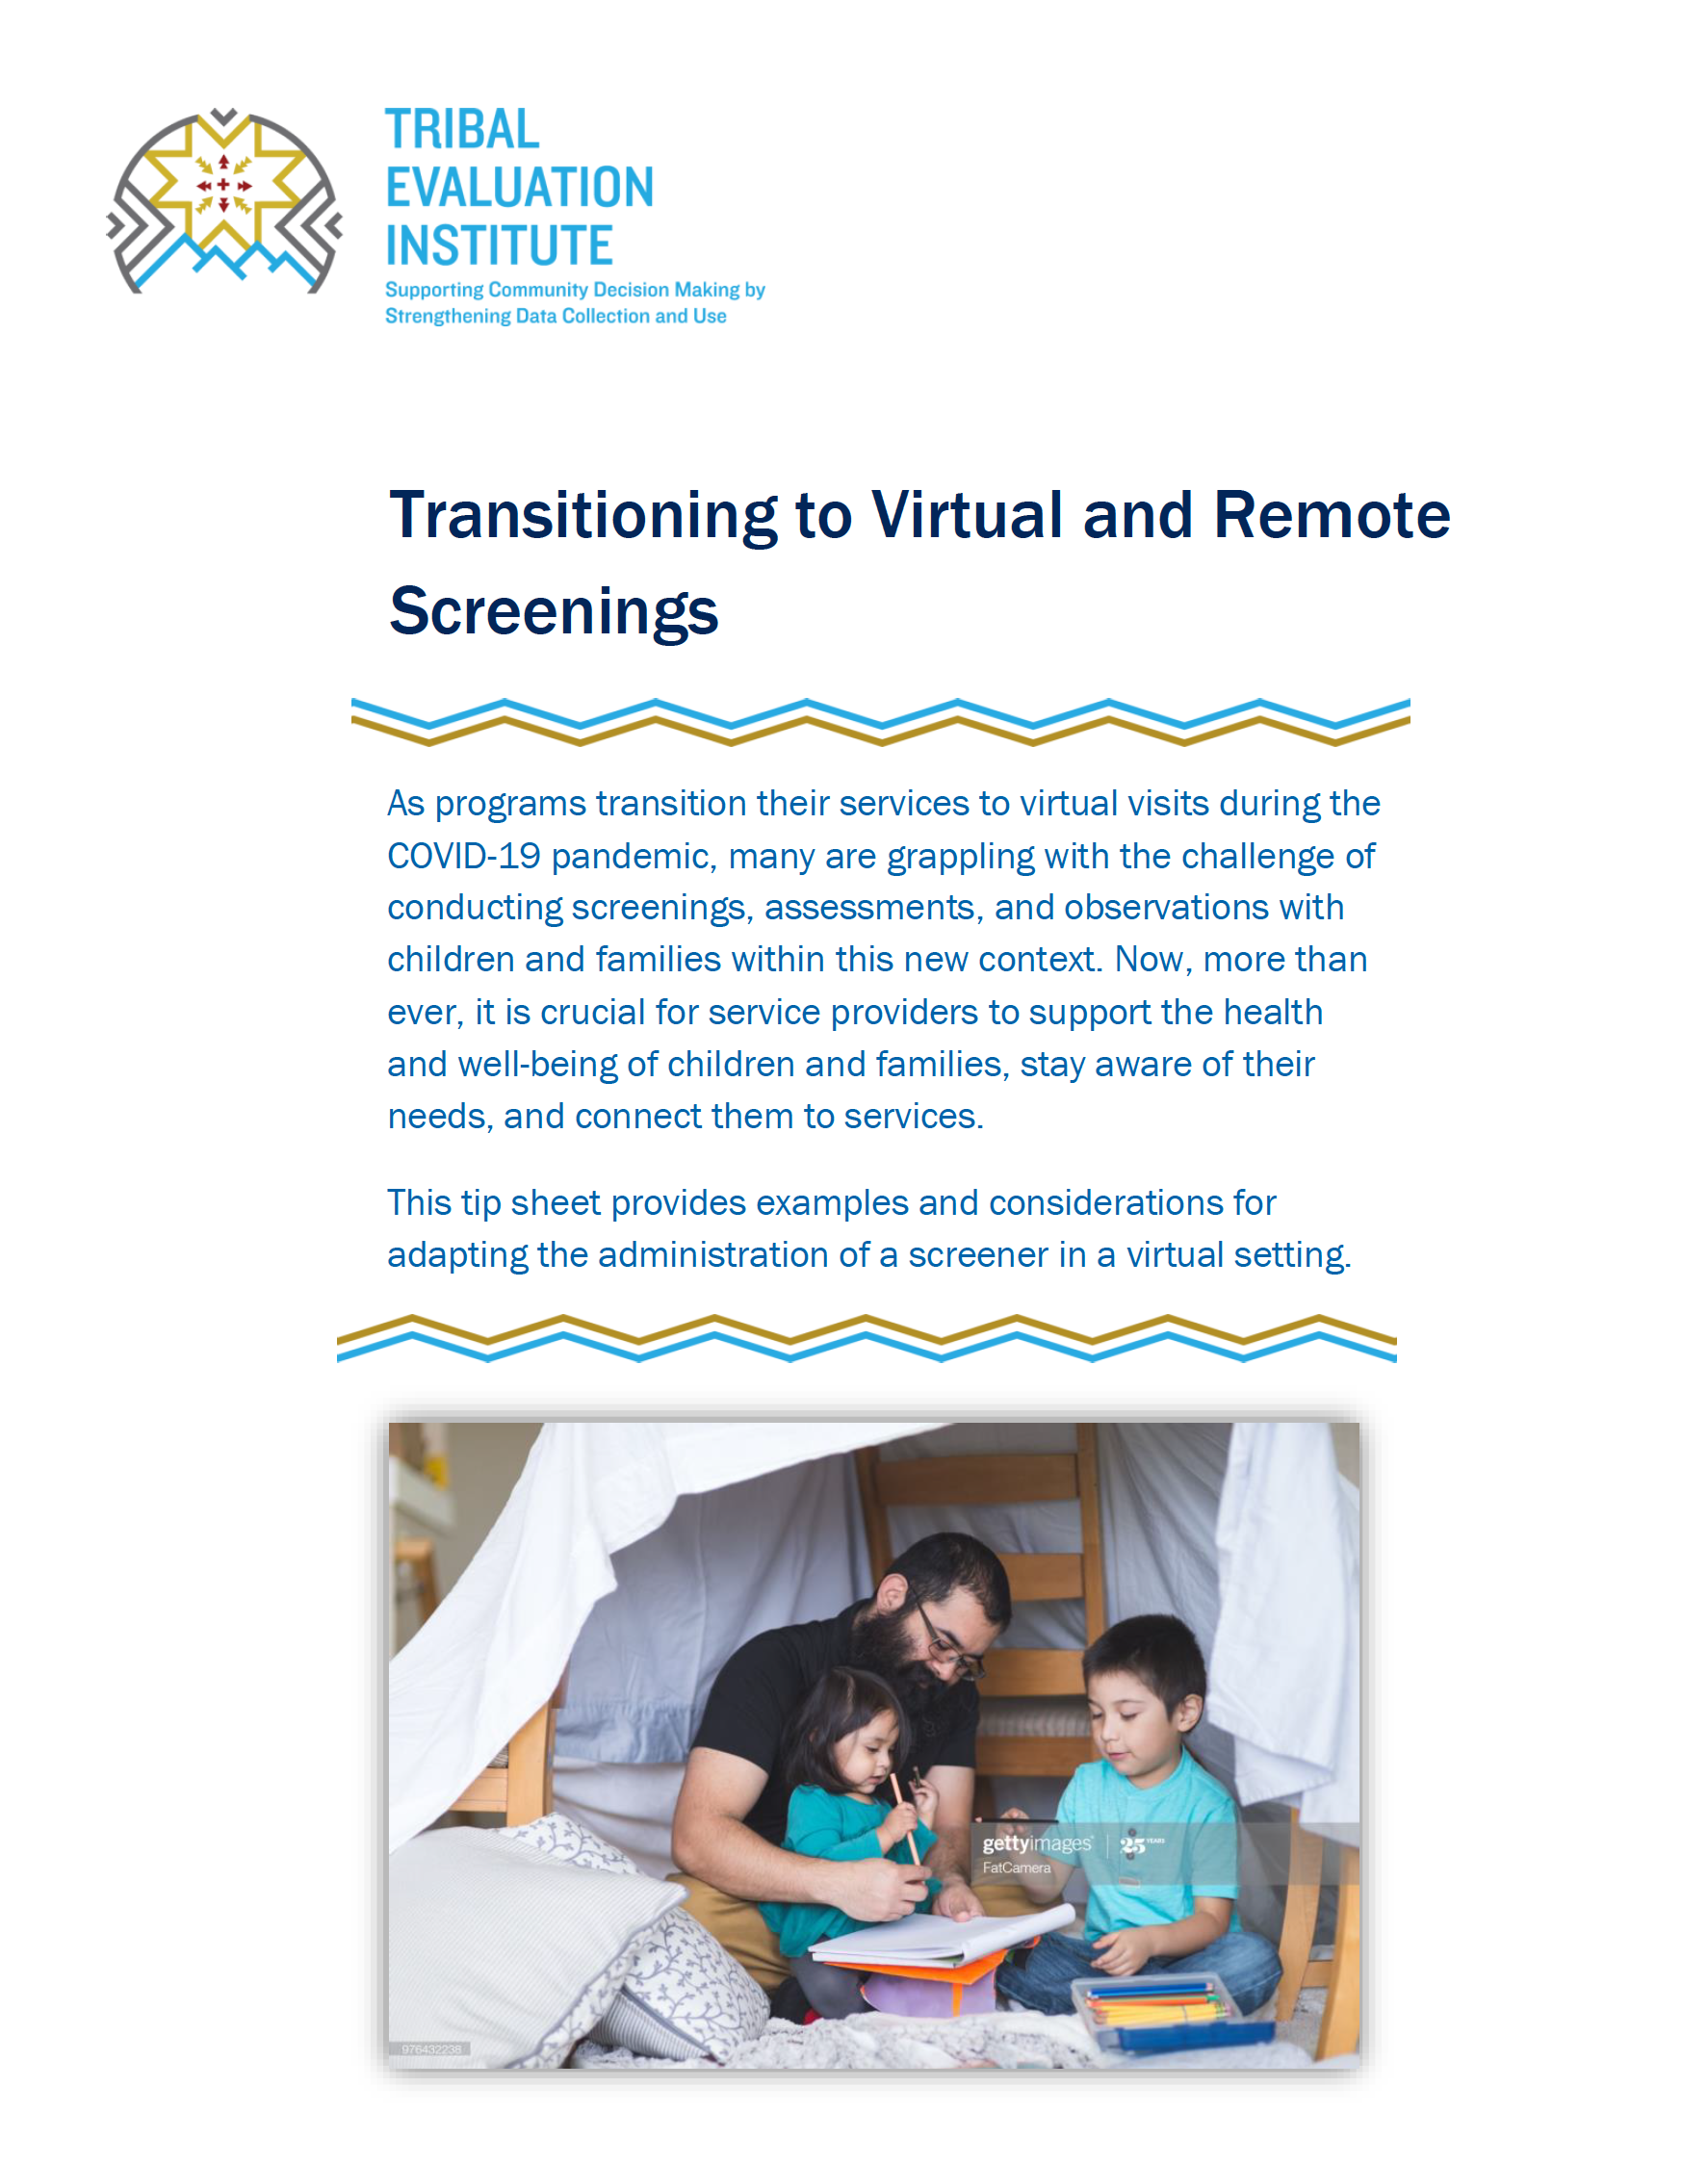 Virtual and Remote Screenings tip sheet cover